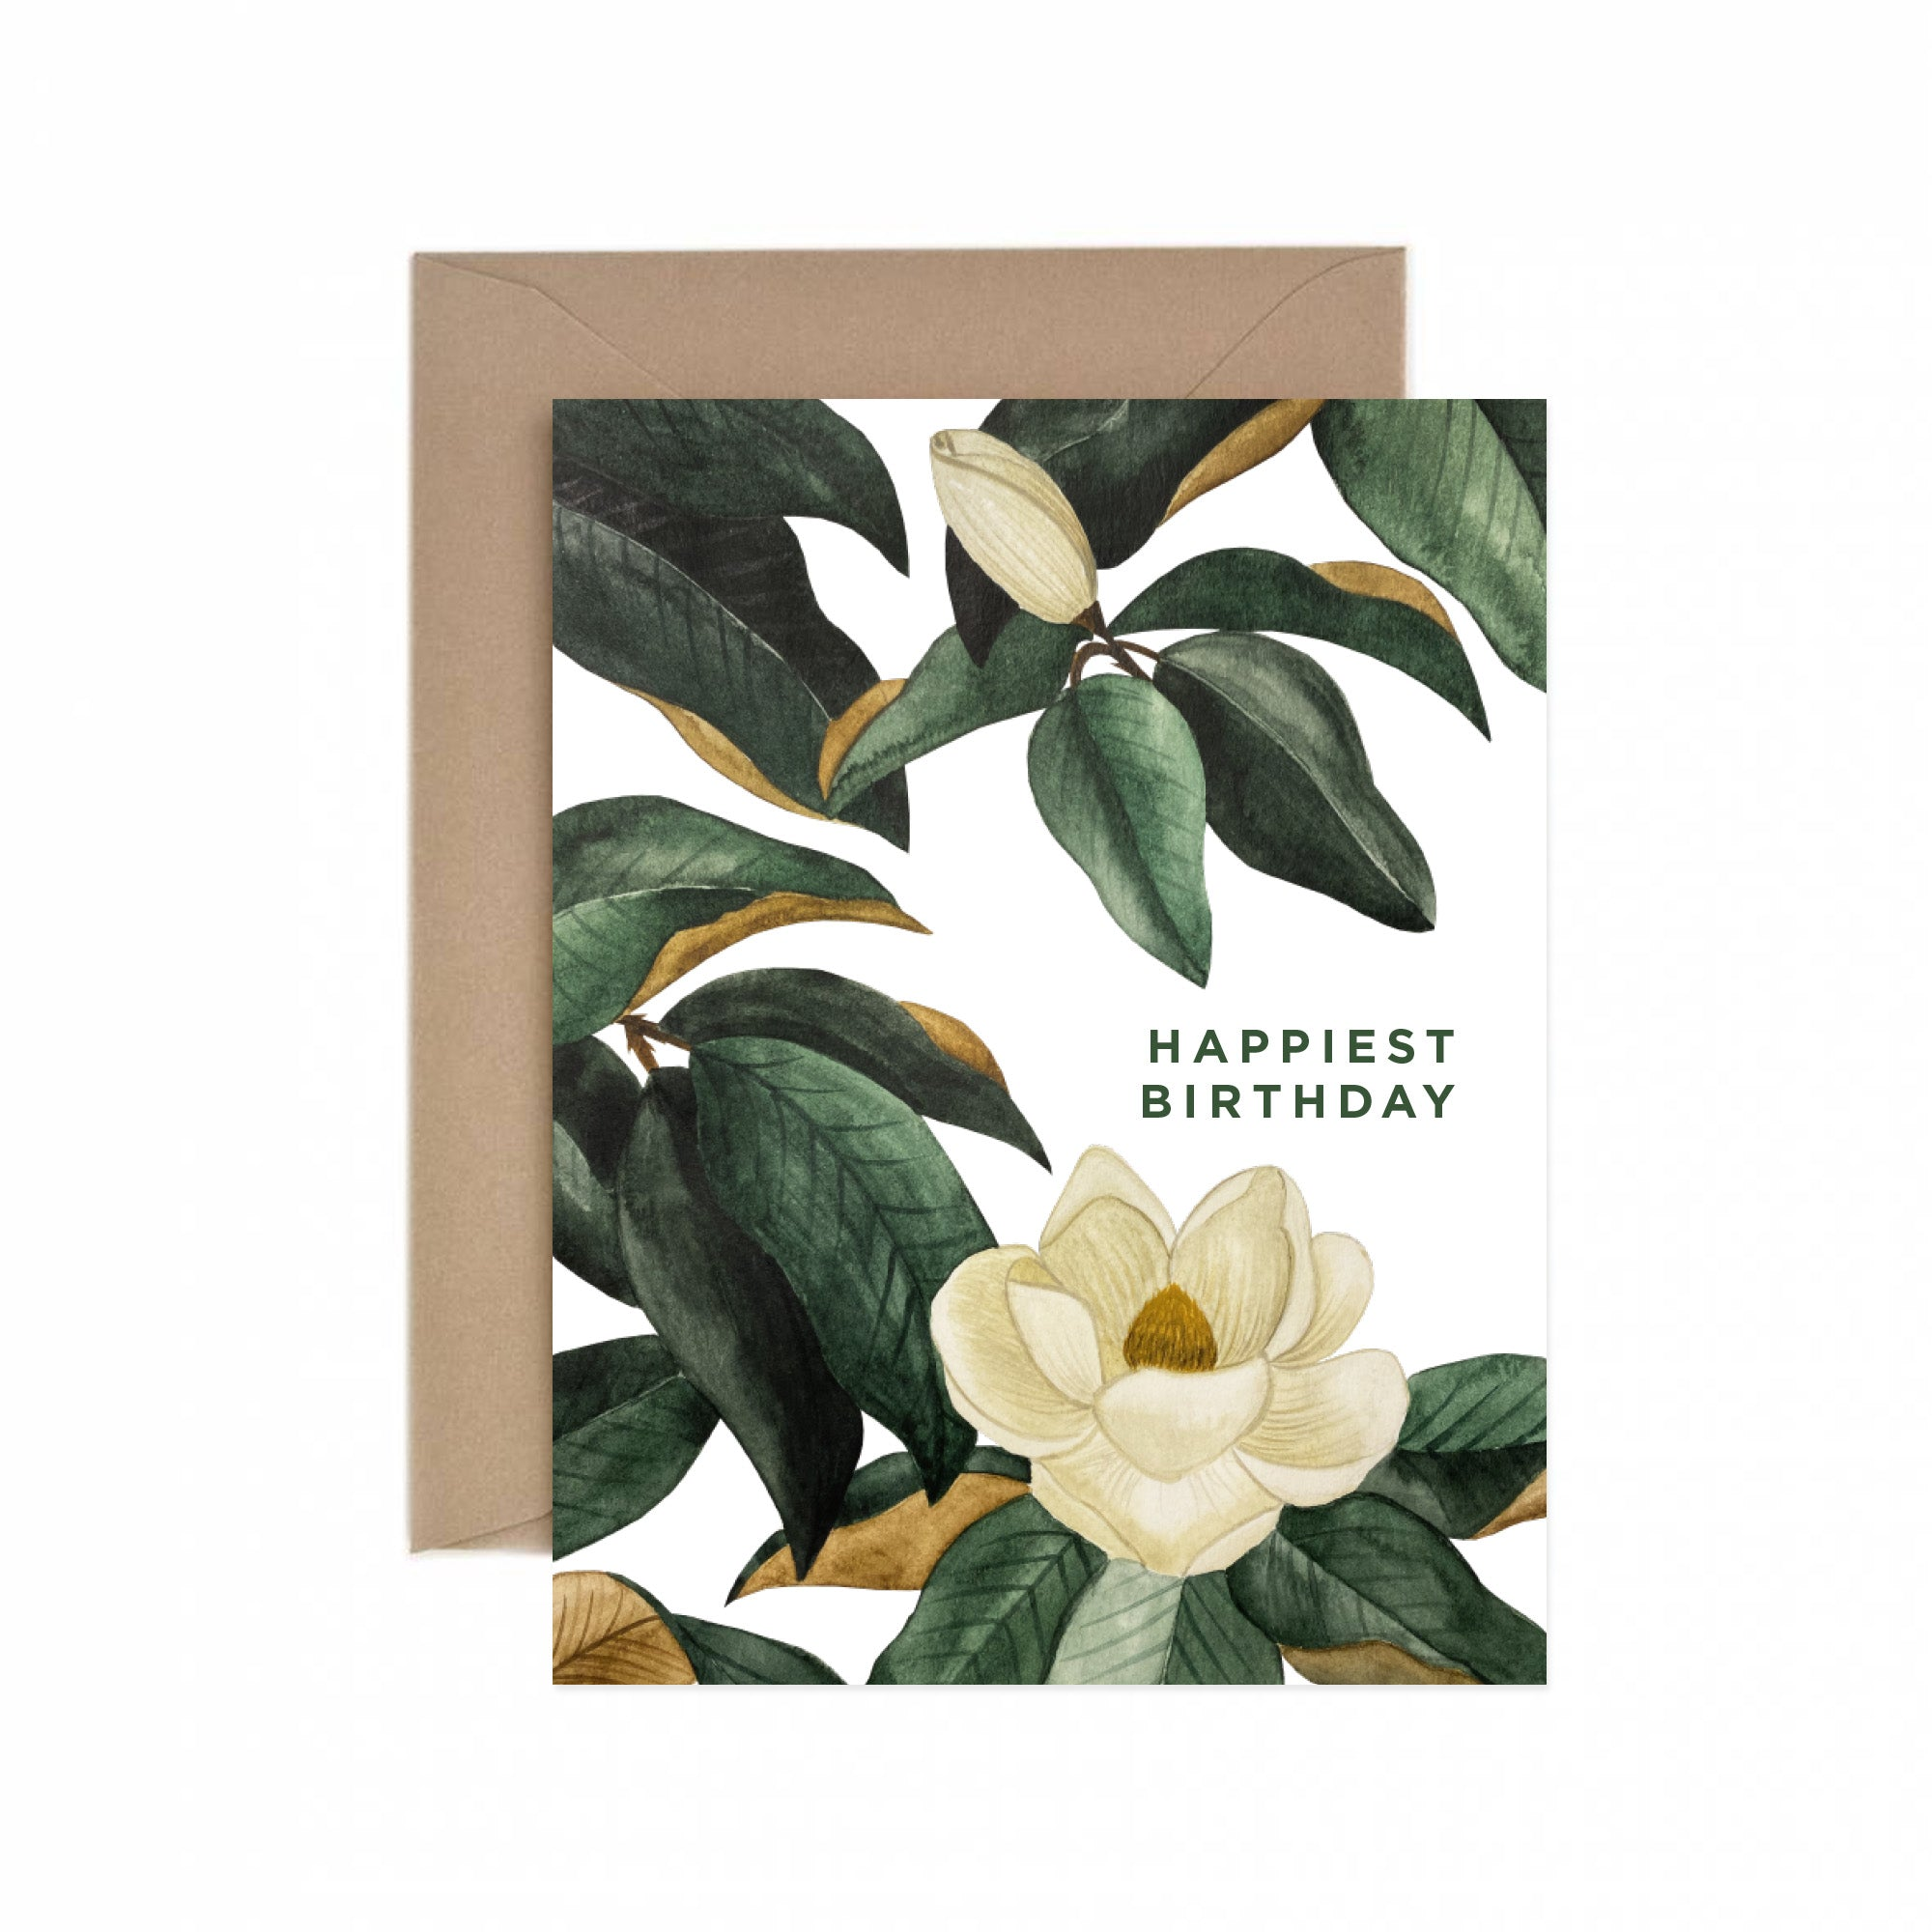 Magnolia Happiest Birthday Greeting Card